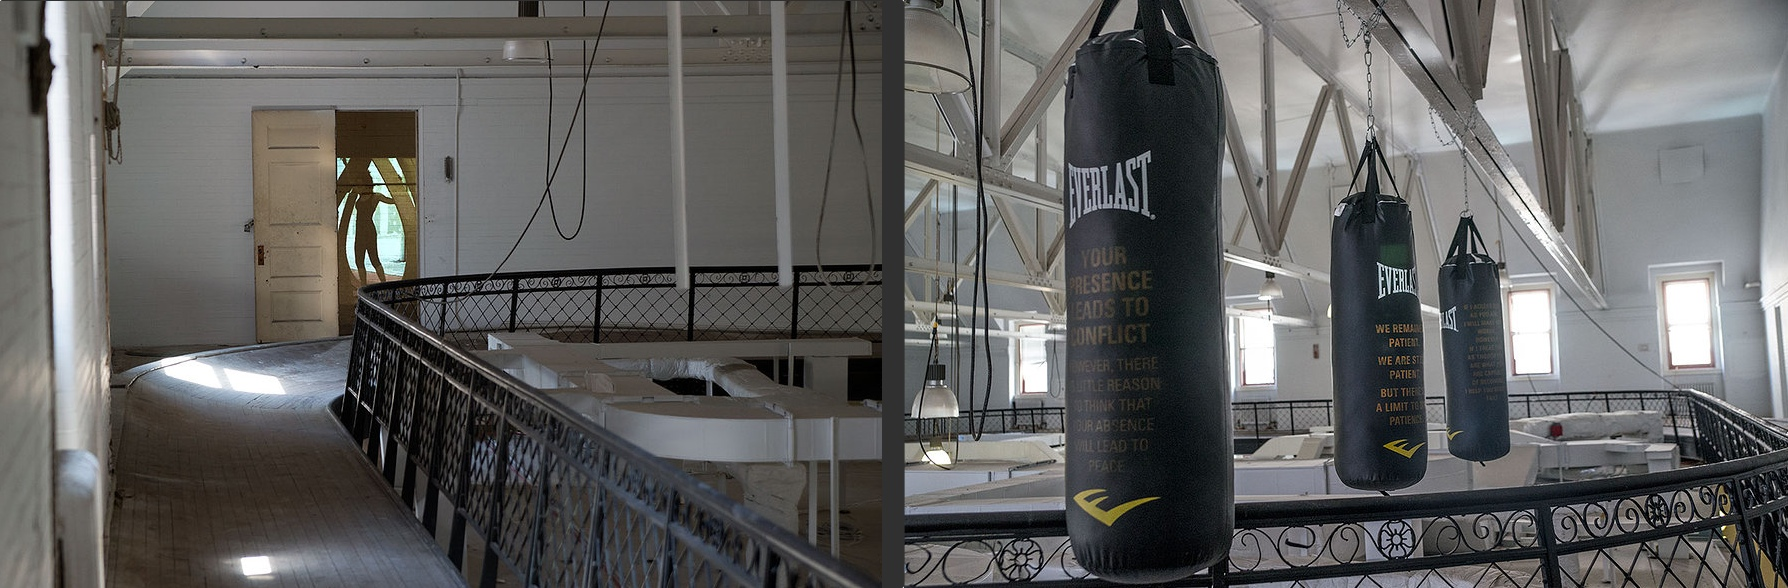 """Doing and Undergoing, Columbia University, Teachers College, New York (Right) Monika Wuhrer, installation view, """"Your presence leads to conflict (however, there is little reason to think your absence will lead to peace). 2013, Three Everlast punching bags with text applied to surface by the artist (Left) Caterina Tiazzoldi & Eduardo Benamor Duarte, Onion Pinch, Baroque Contrepoids Redux. Video projection / Audio, 2013 Both located in Thompson Hall, mezzanine (old gym)"""